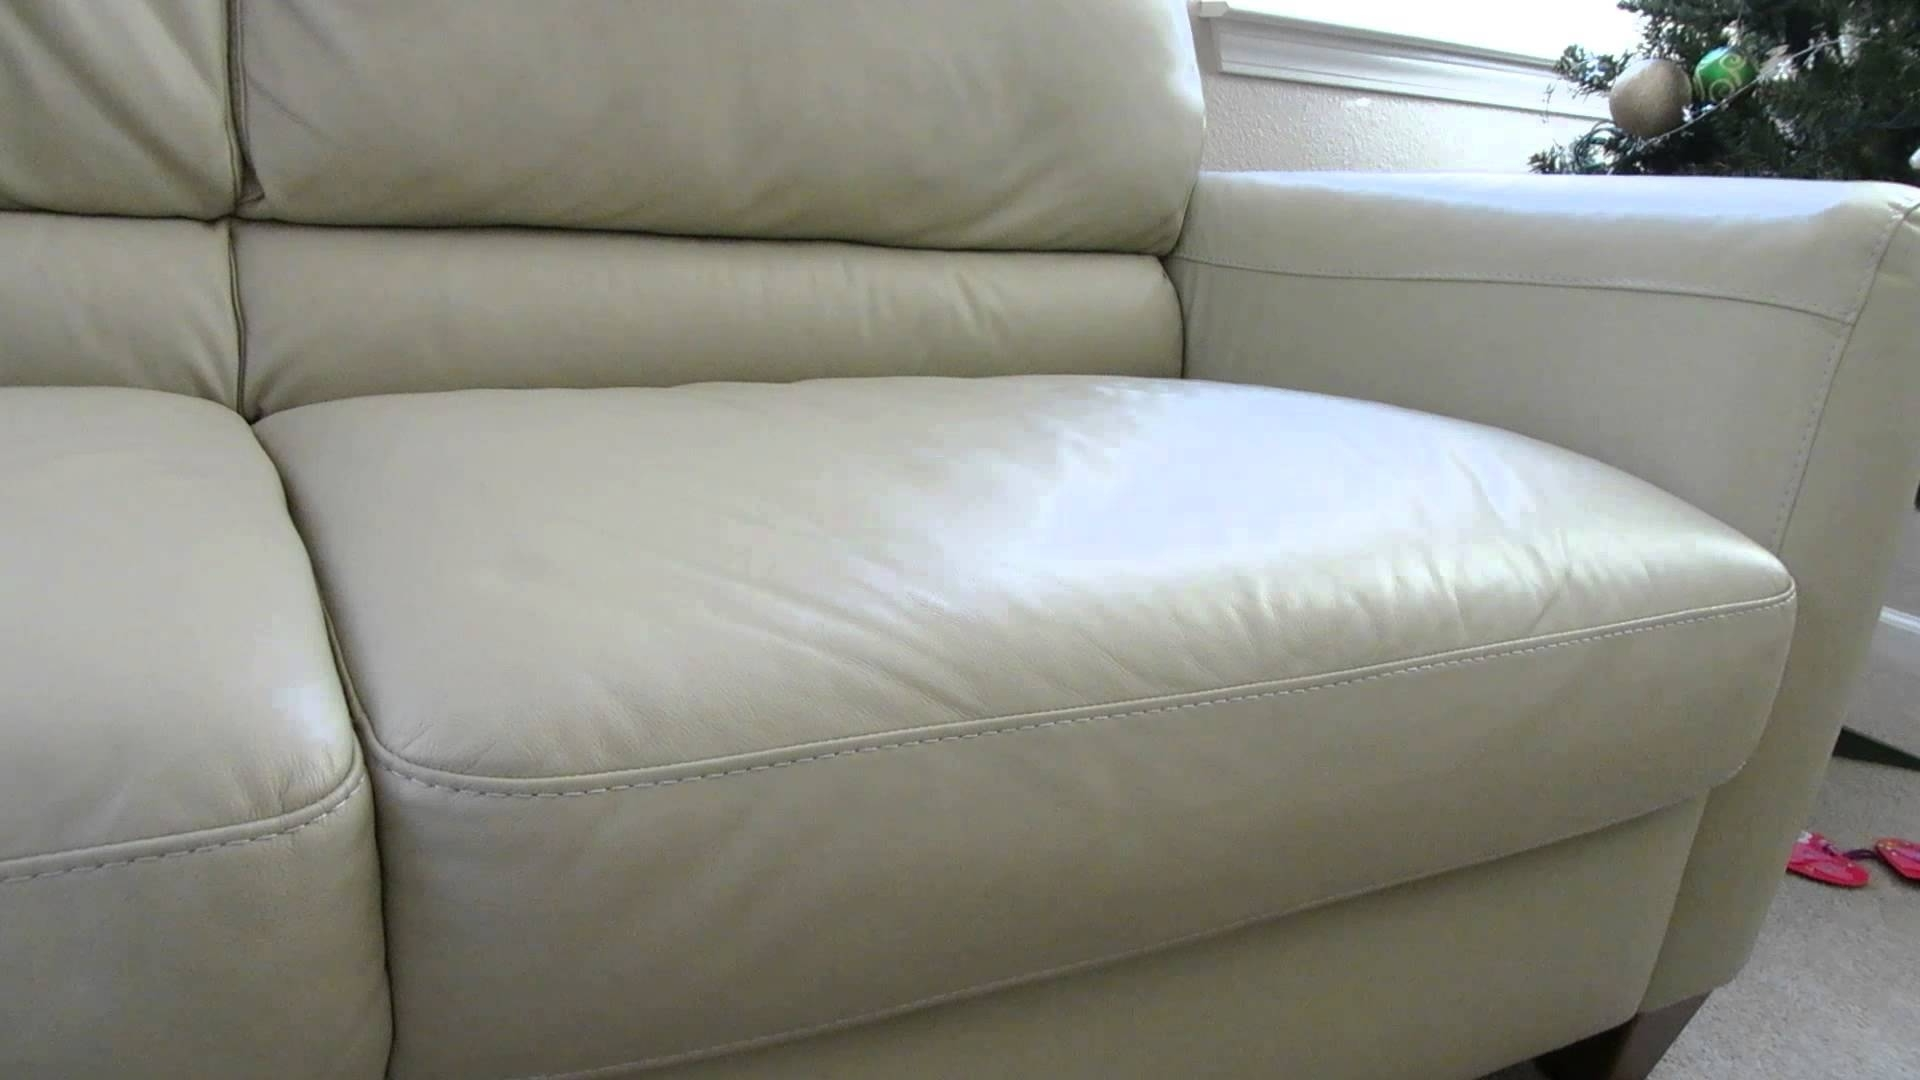 Macys Leather Sofas Inside Newest Review Of The Macys Almafi Leather Lime Green Sofa – Youtube (View 11 of 20)